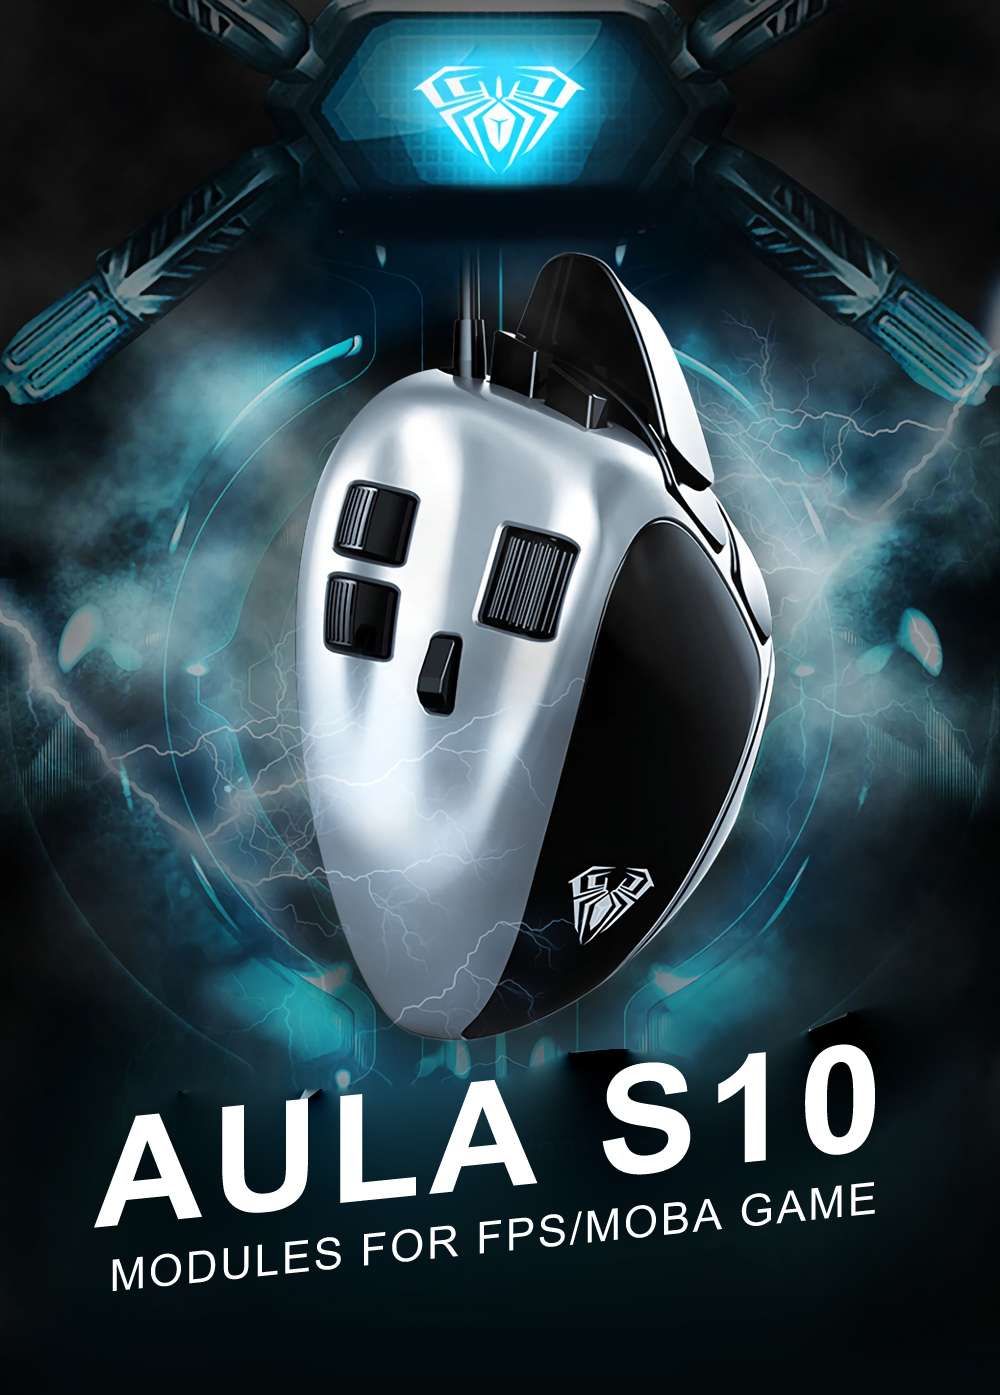 AULA S10 4000DPI Adjustable Module Structure Optical Gaming Mouse for FPS/MOBA Game